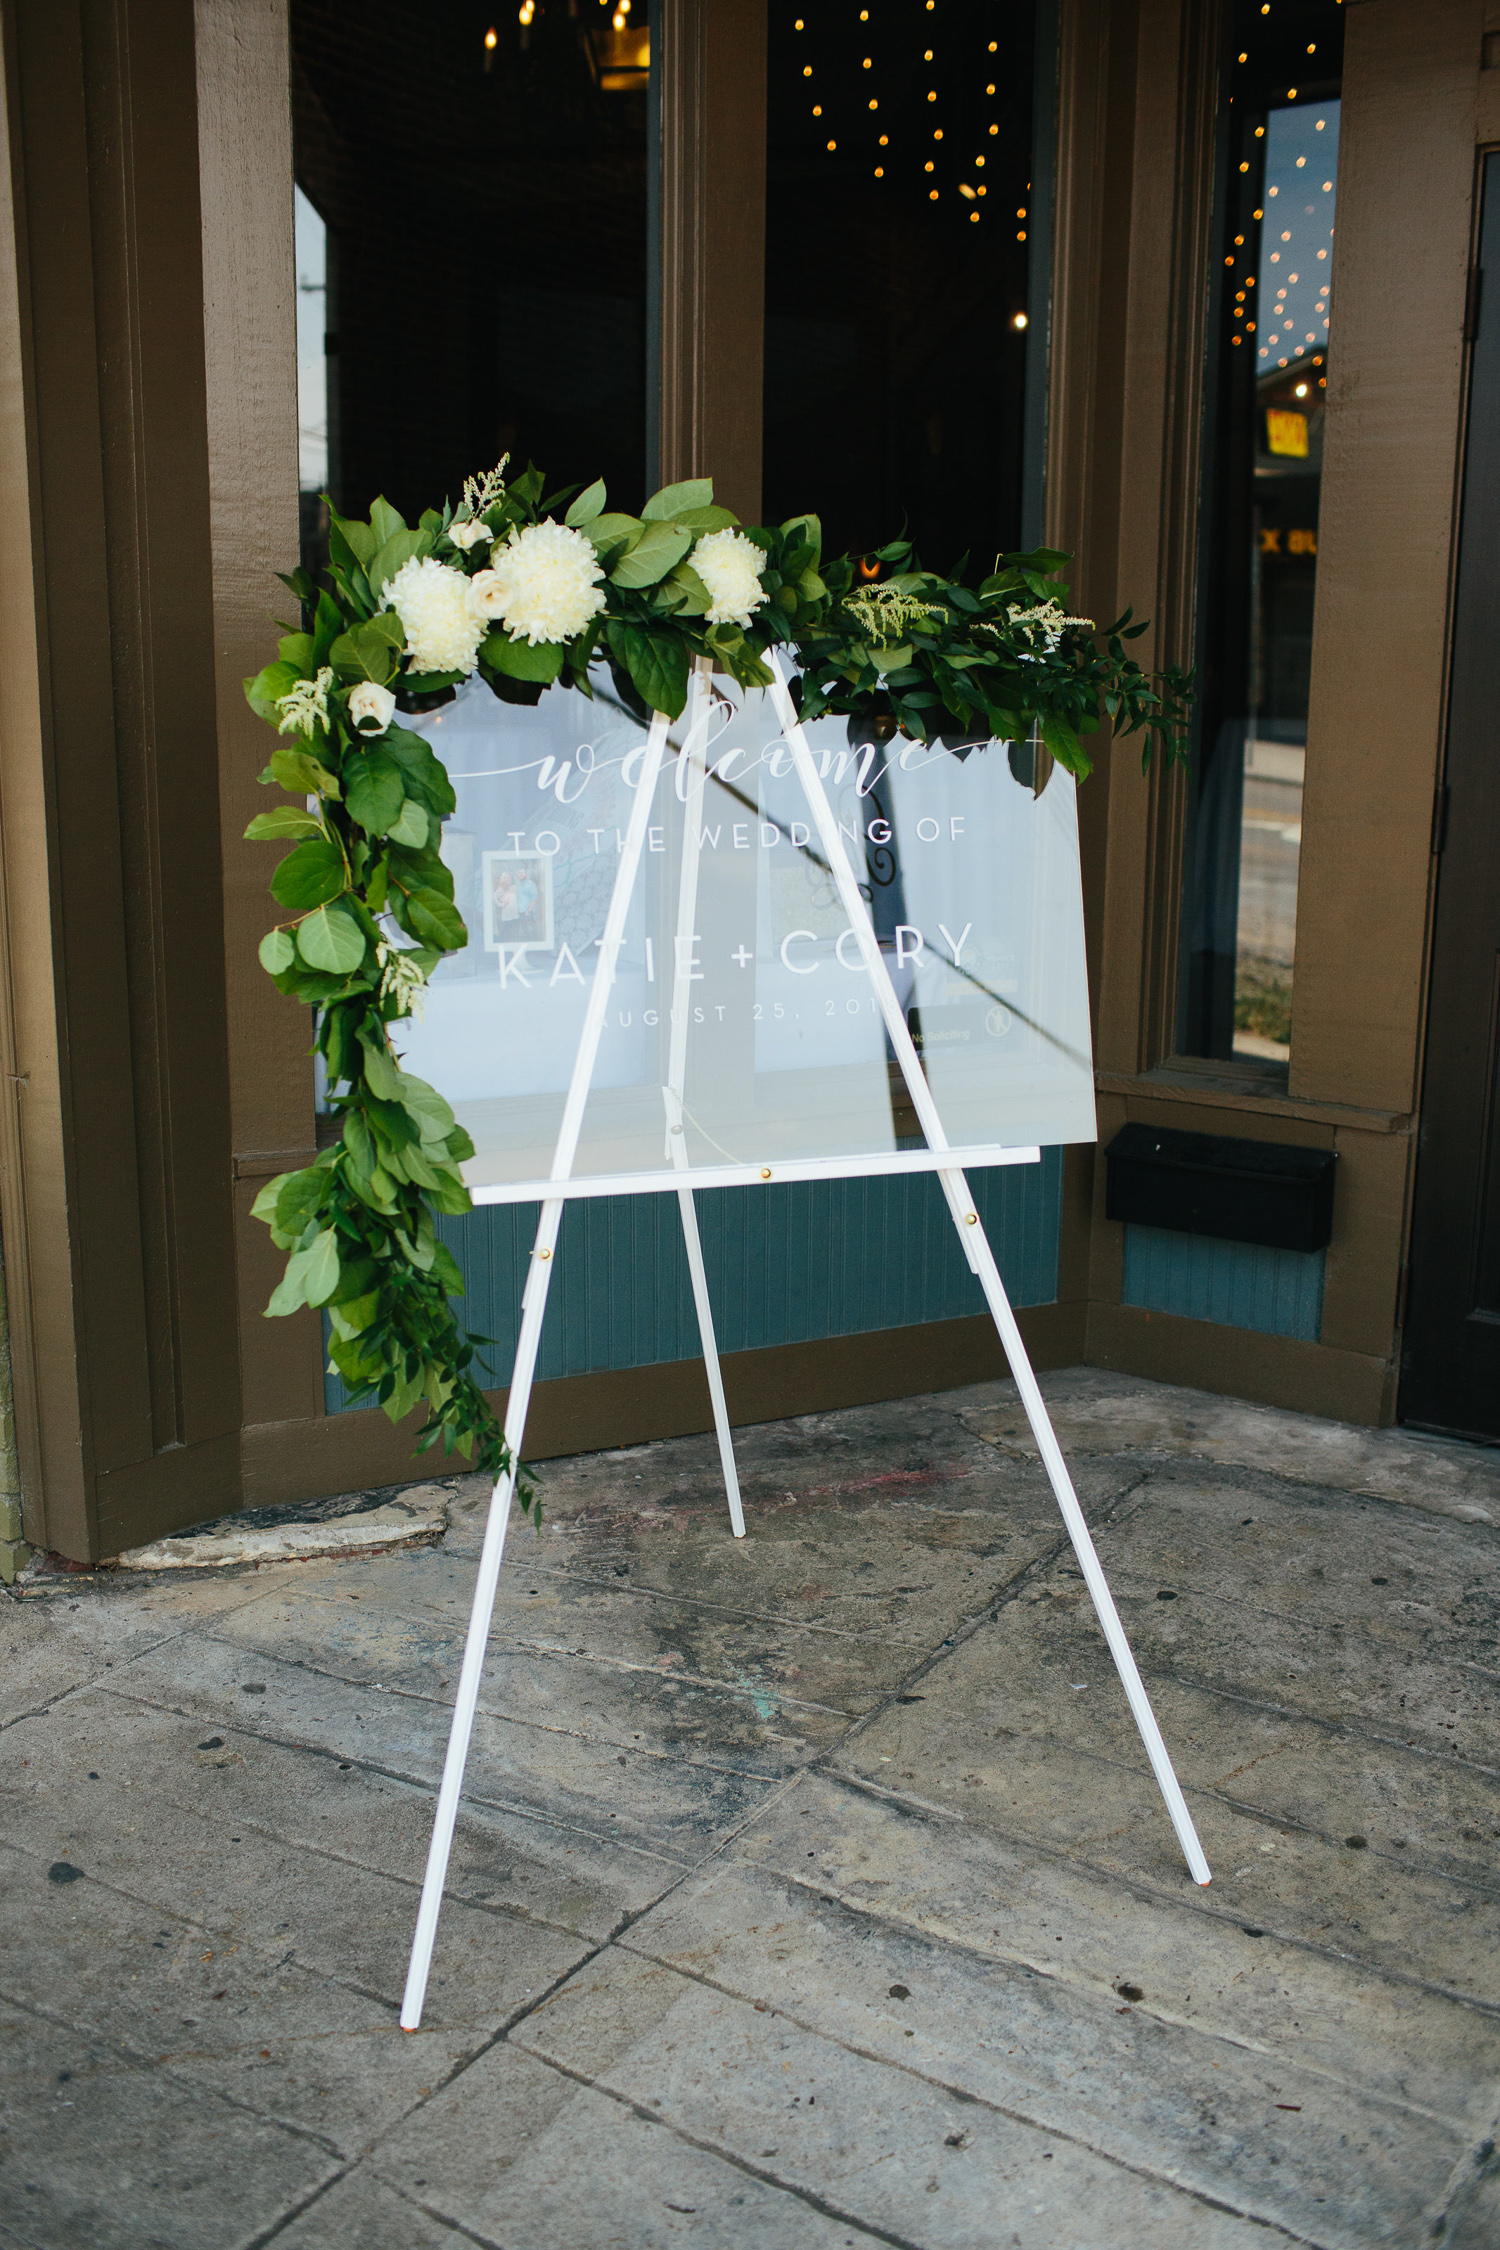 Downtown Knoxville Wedding Reception Venue // Botanical Wedding // Welcome Sign